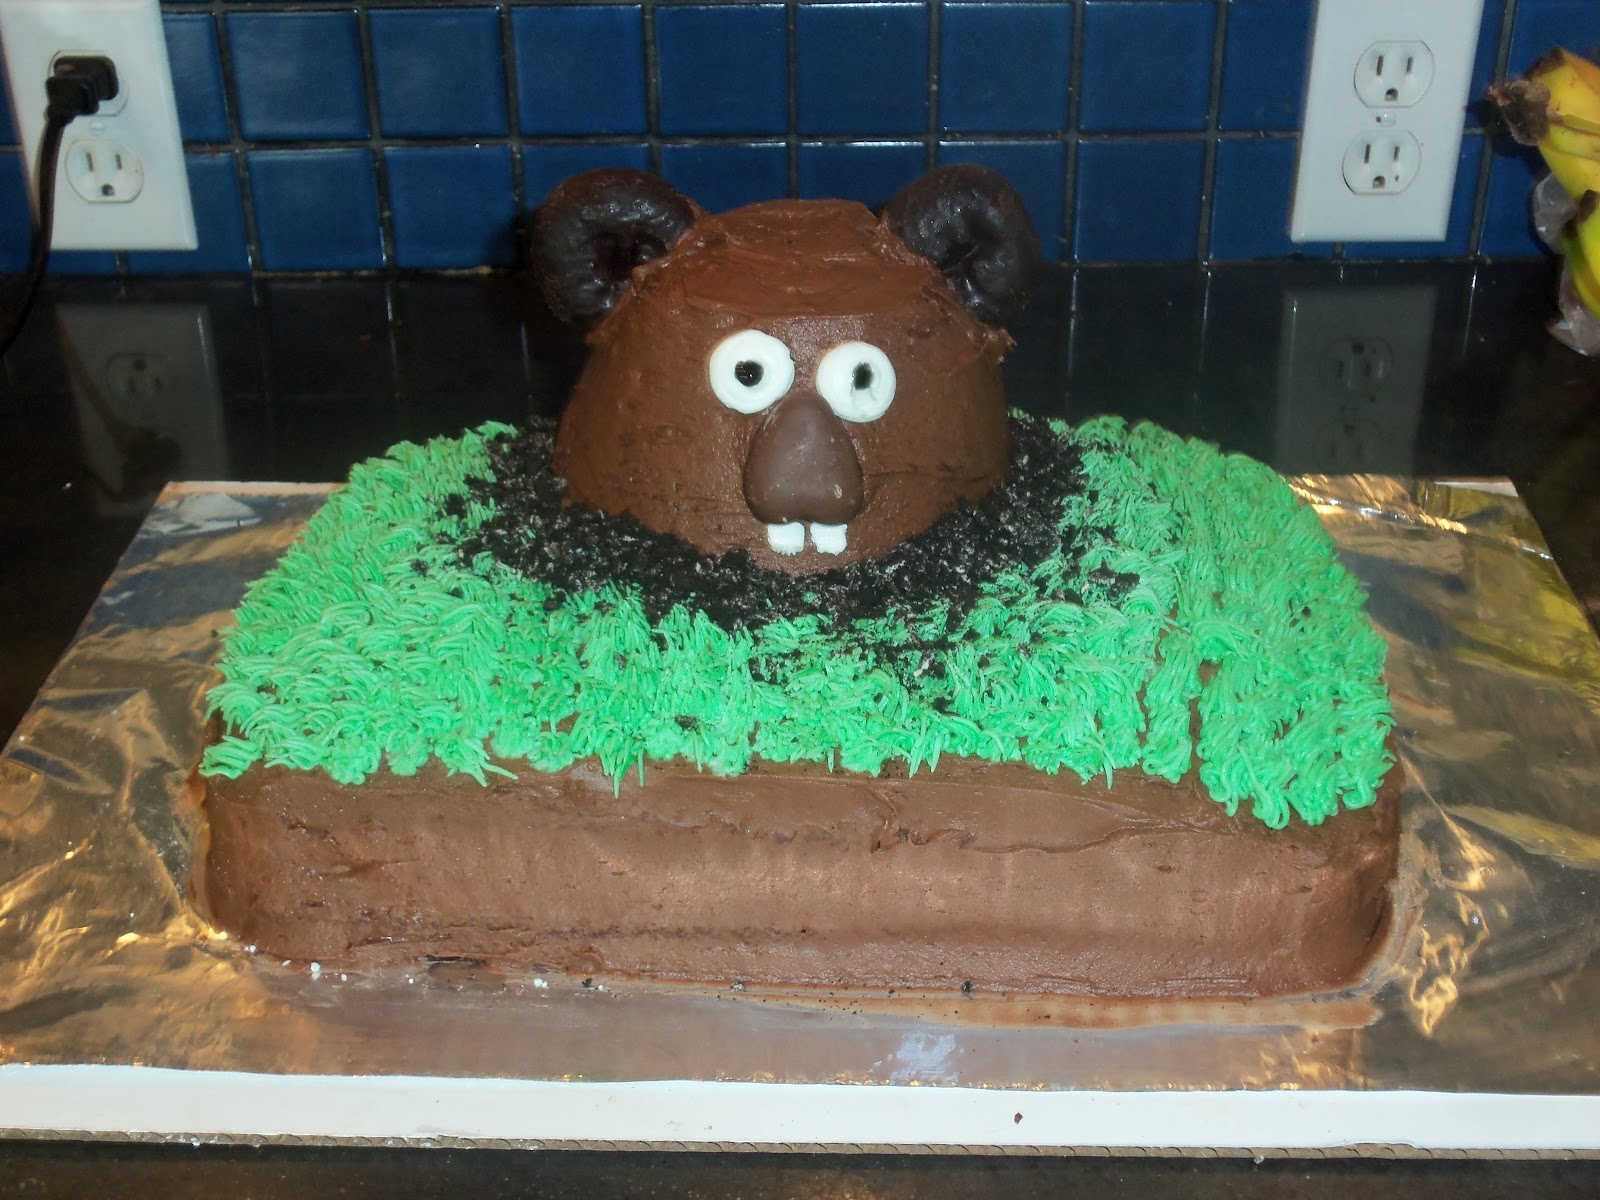 Now this cake groundhog seems to resemble a bear with buck teeth. Or ...